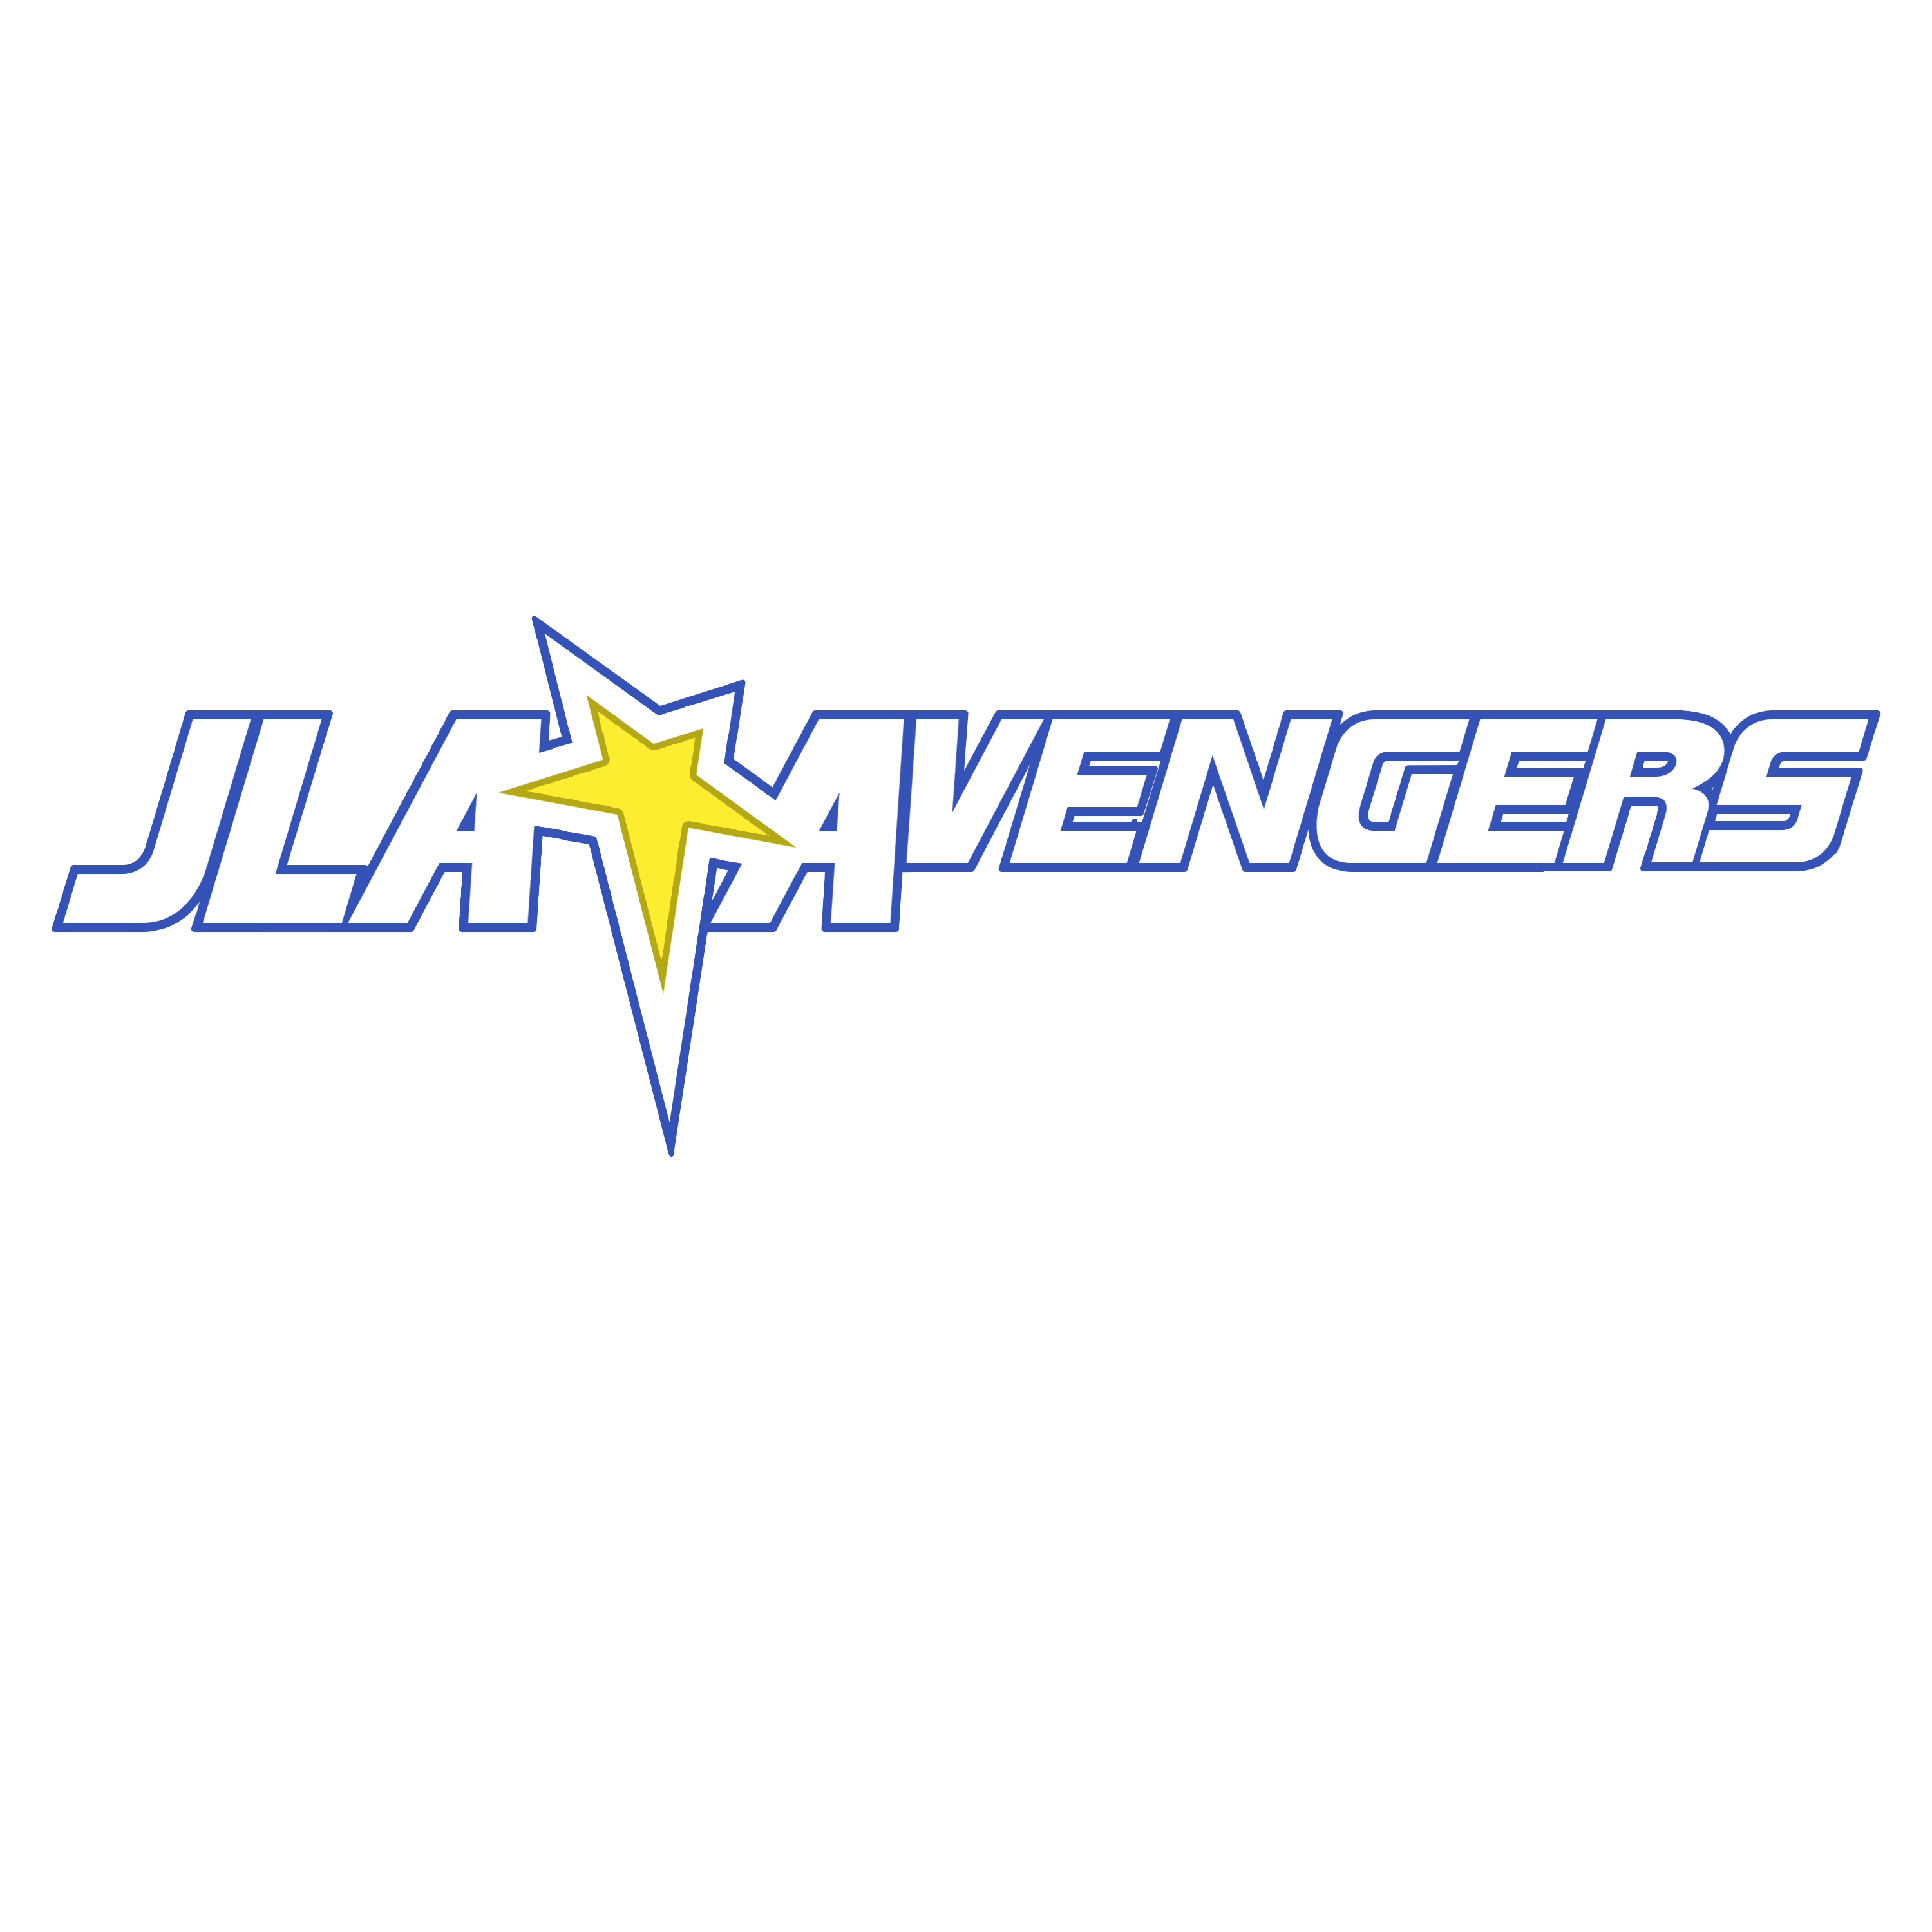 """JLA/Avengers"" 1 logo I recreated with"